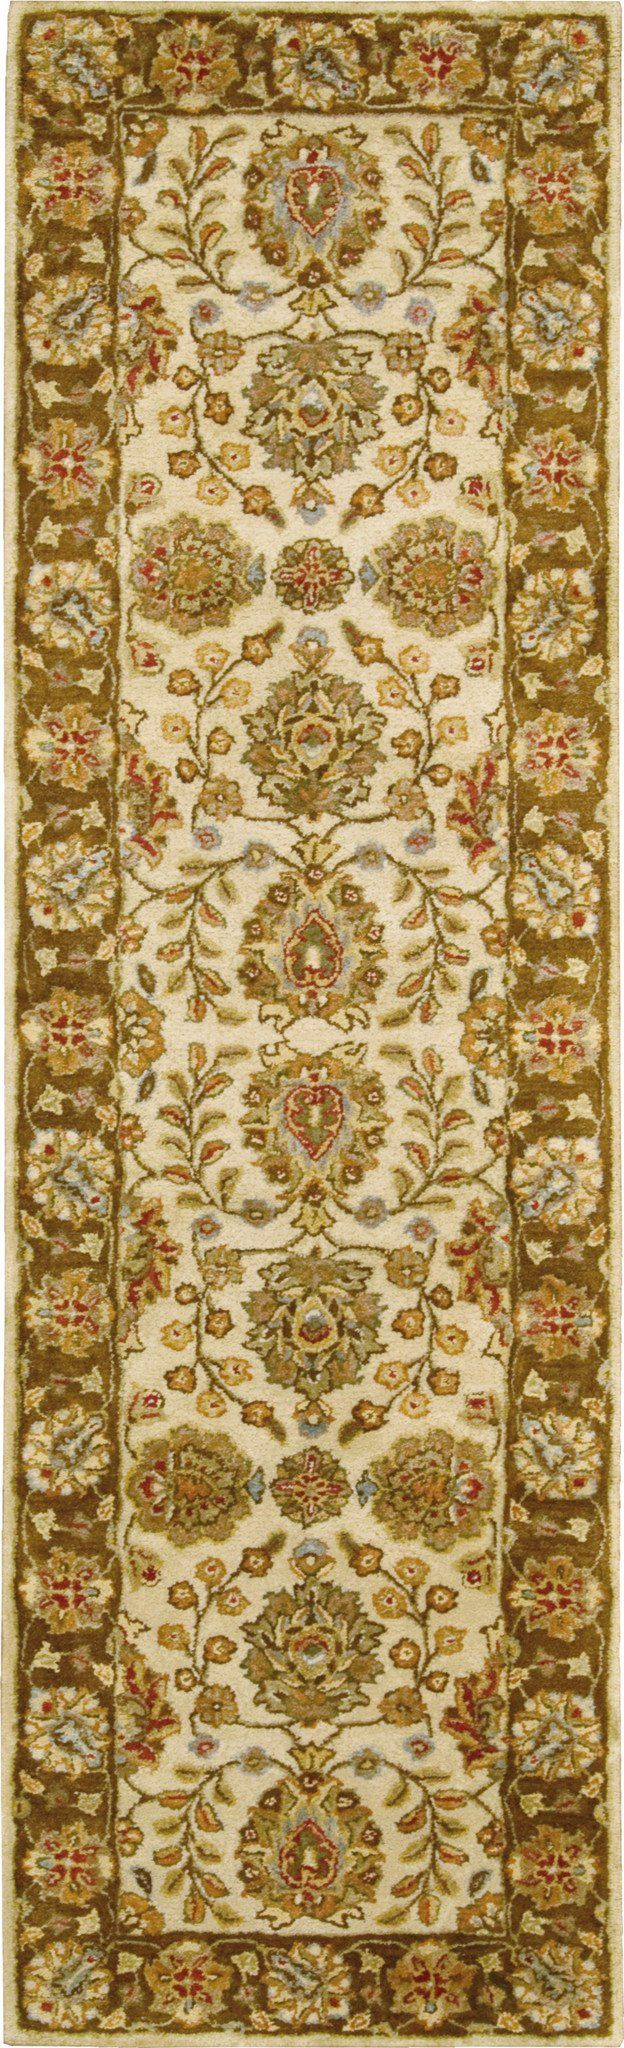 "Jaipur Ivory Brown Area Rug 2'4"" x 8'"